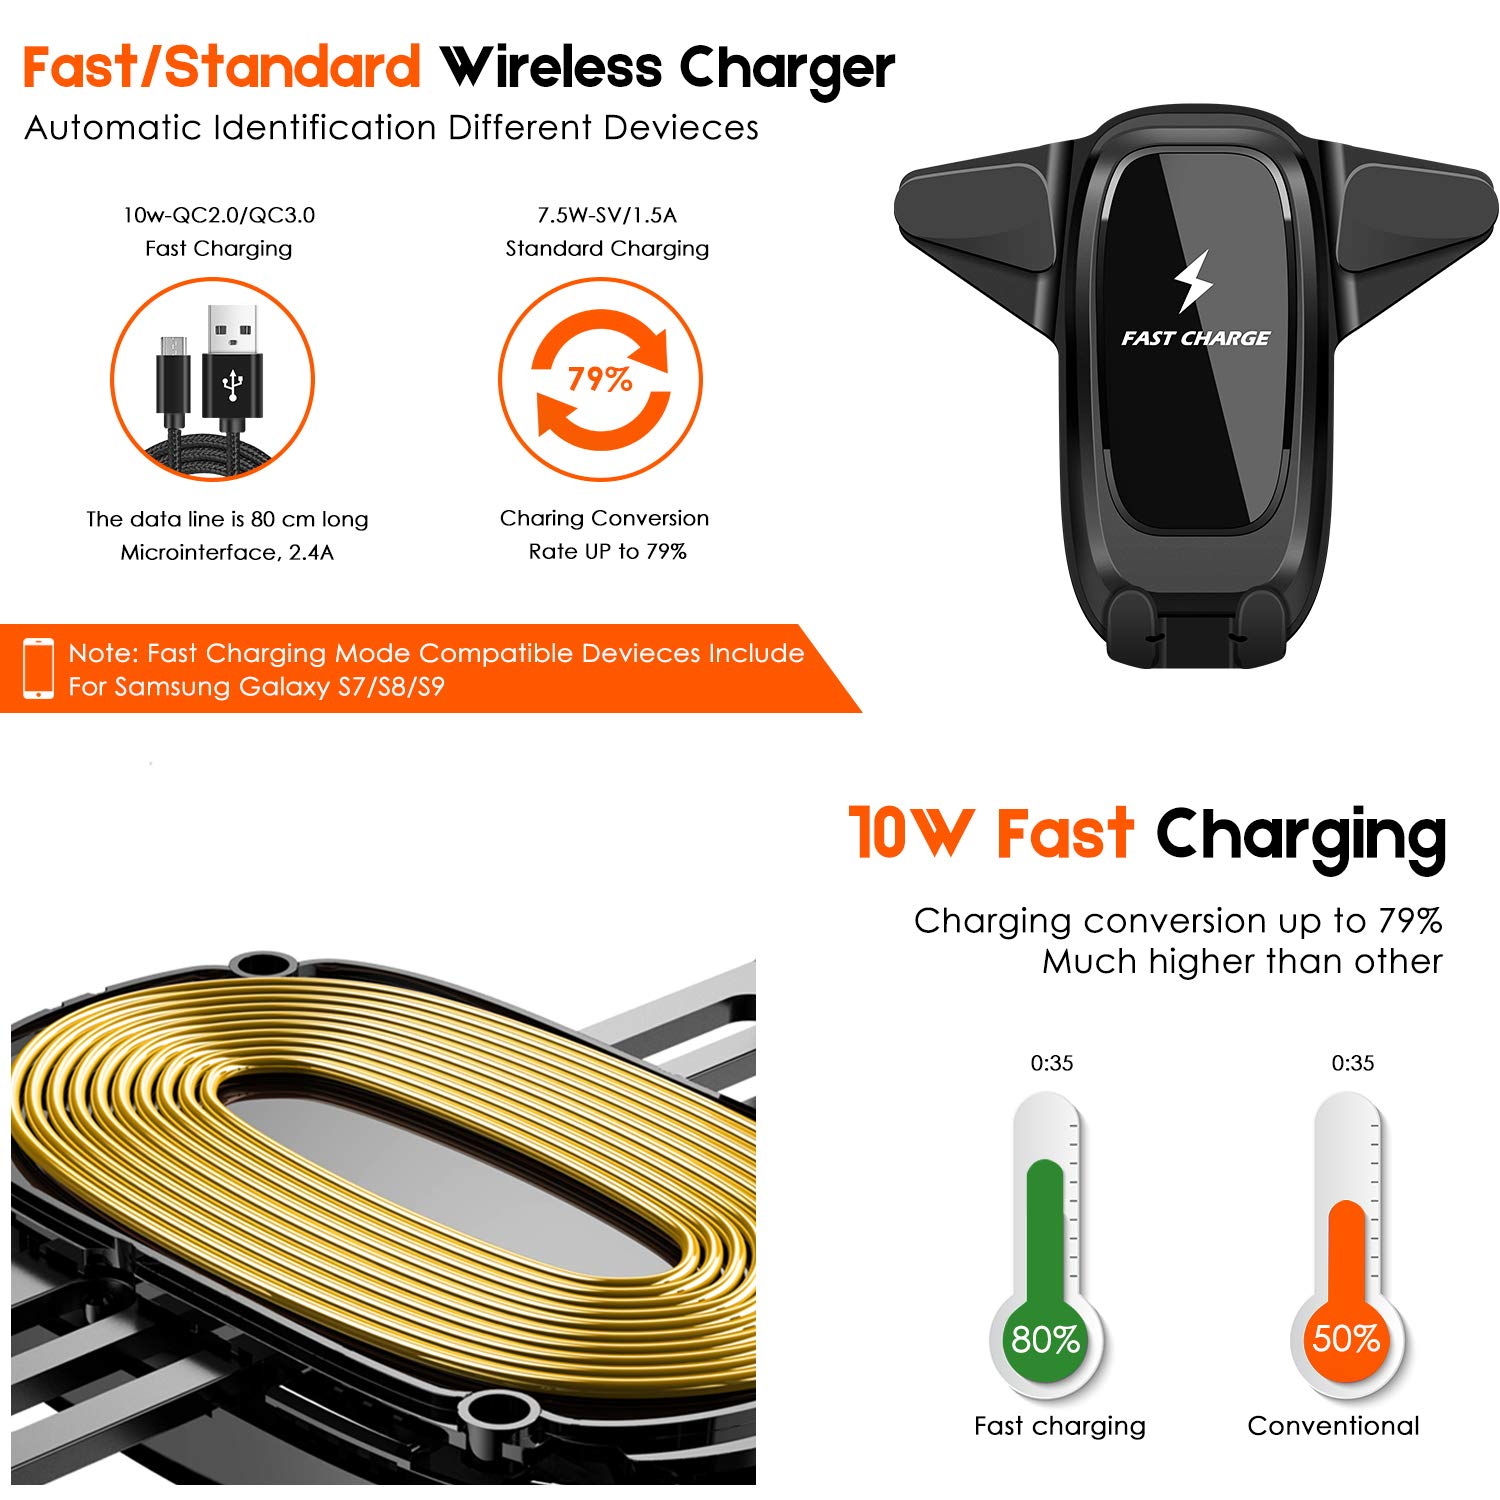 YSDRoyal 10W Wireless Charger, Wireless Fast Car Mount, Air Vent Phone Holder, 10W Compatible For Samsung Galaxy S9/S9+/S8/S8+/Note 8, 7.5W Compatible For iPhone Xs Max/Xs/XR/X/ 8/8 Plus (10W)